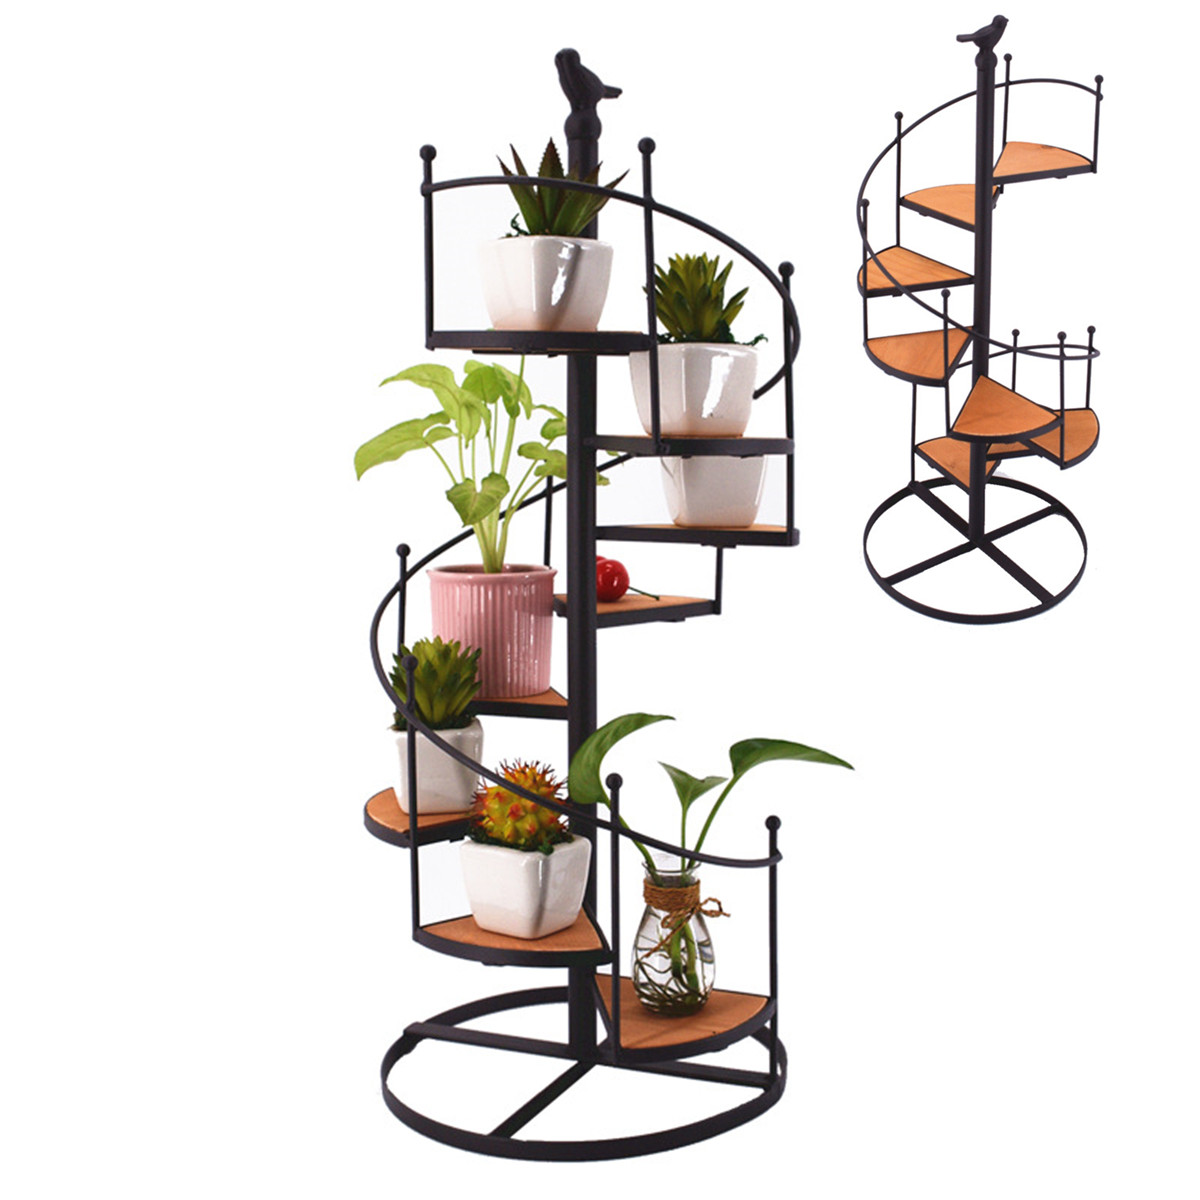 8 Layer Staircase Iron Plant Rack Metal Stand Plants Succulent Shelf Desktop Garden Flower Modern Decorative With Wood Plates